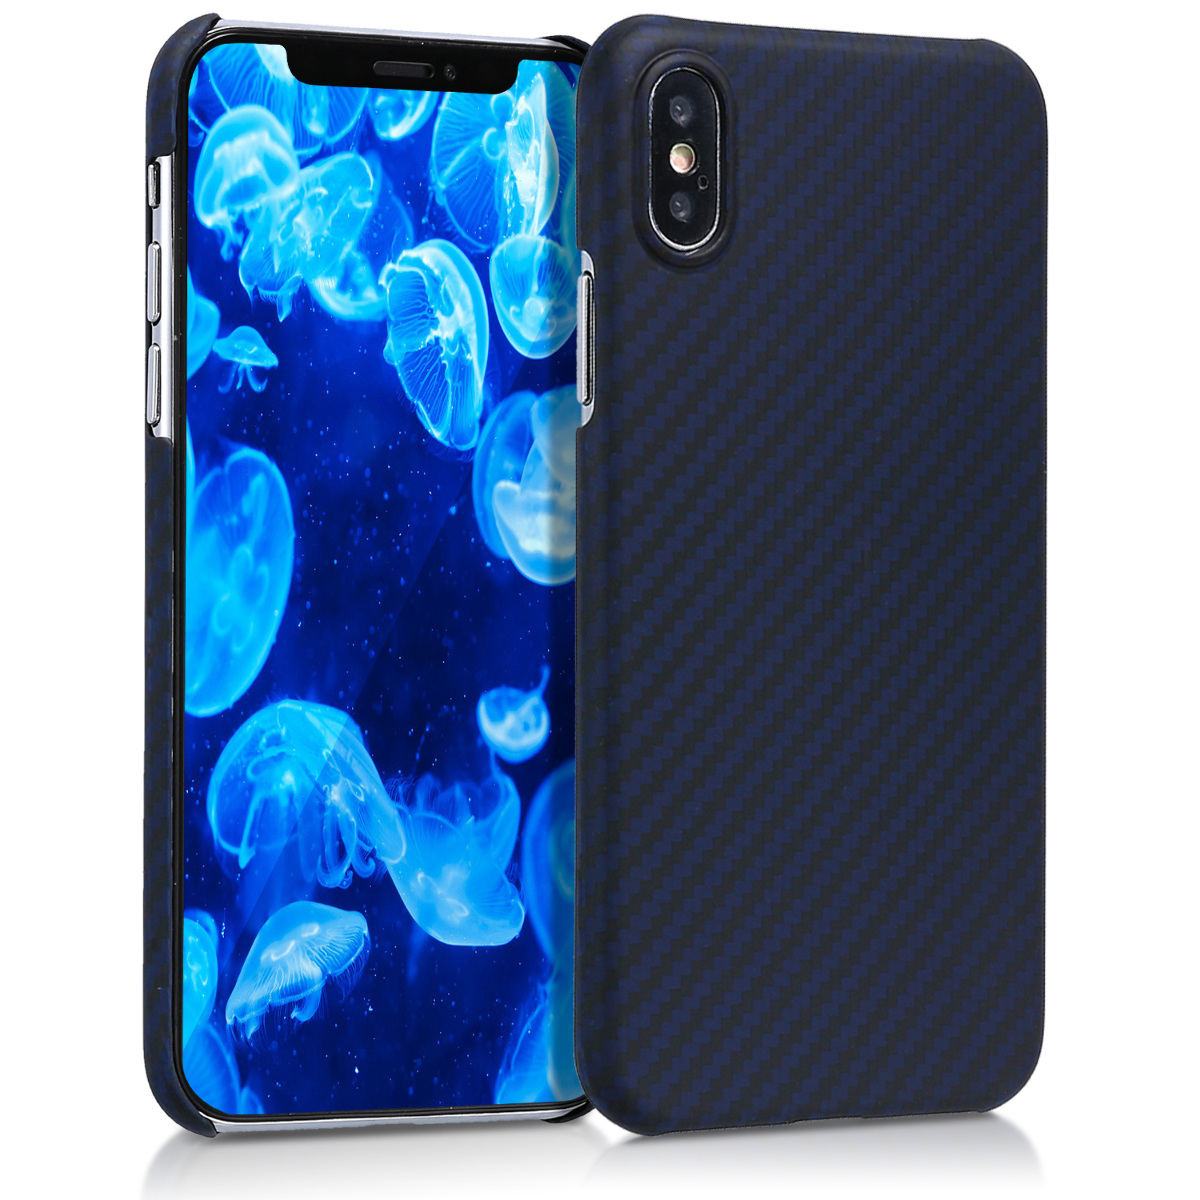 Kalibri Aramid Fiber Body - Σκληρή Θήκη Apple iPhone X / XS - Dark Blue Matte (43748.04)